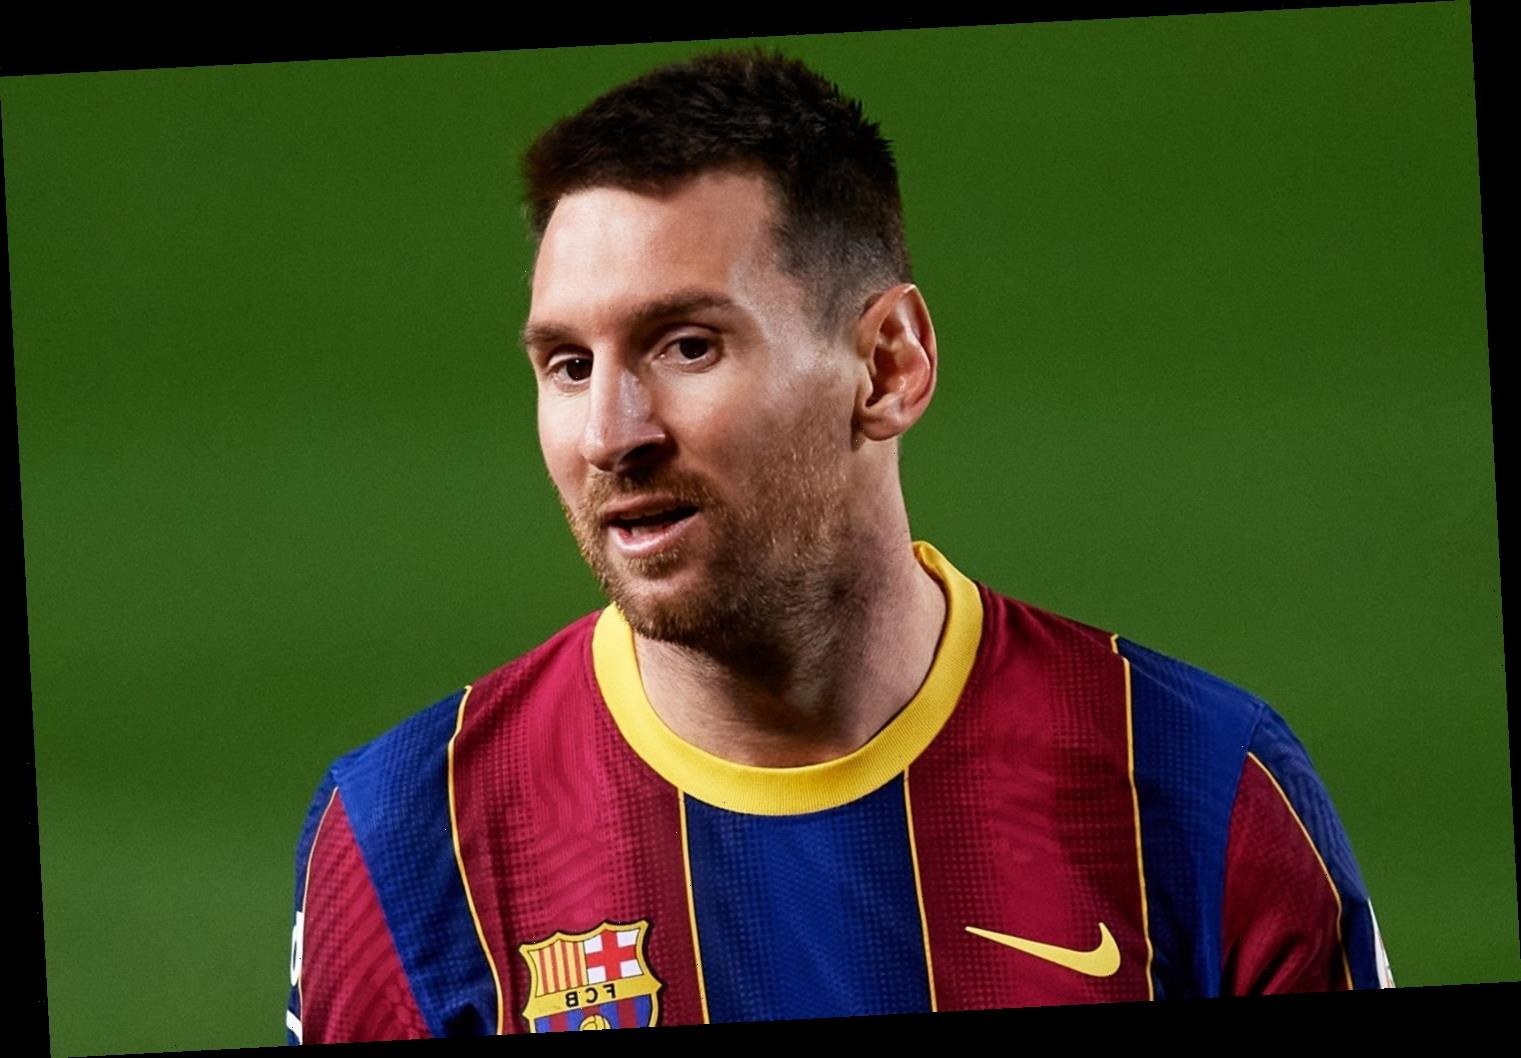 Lionel Messi will receive £35m bonus from Barcelona even if he QUITS for Man City or PSG transfer in summer